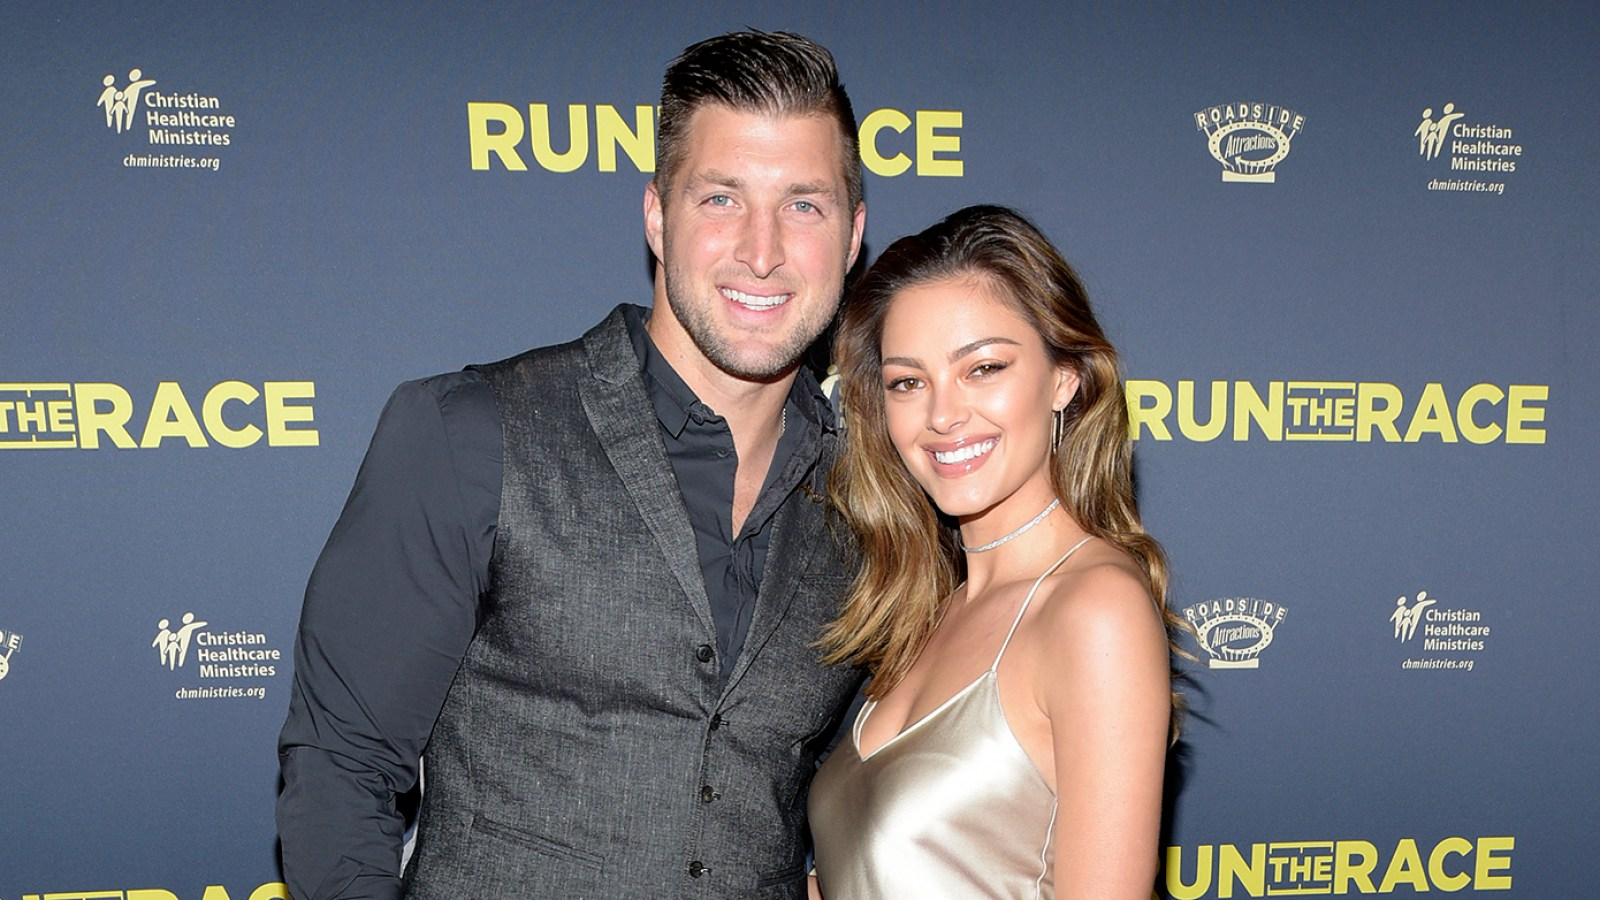 Nina Dobrev dating Tim Tebow